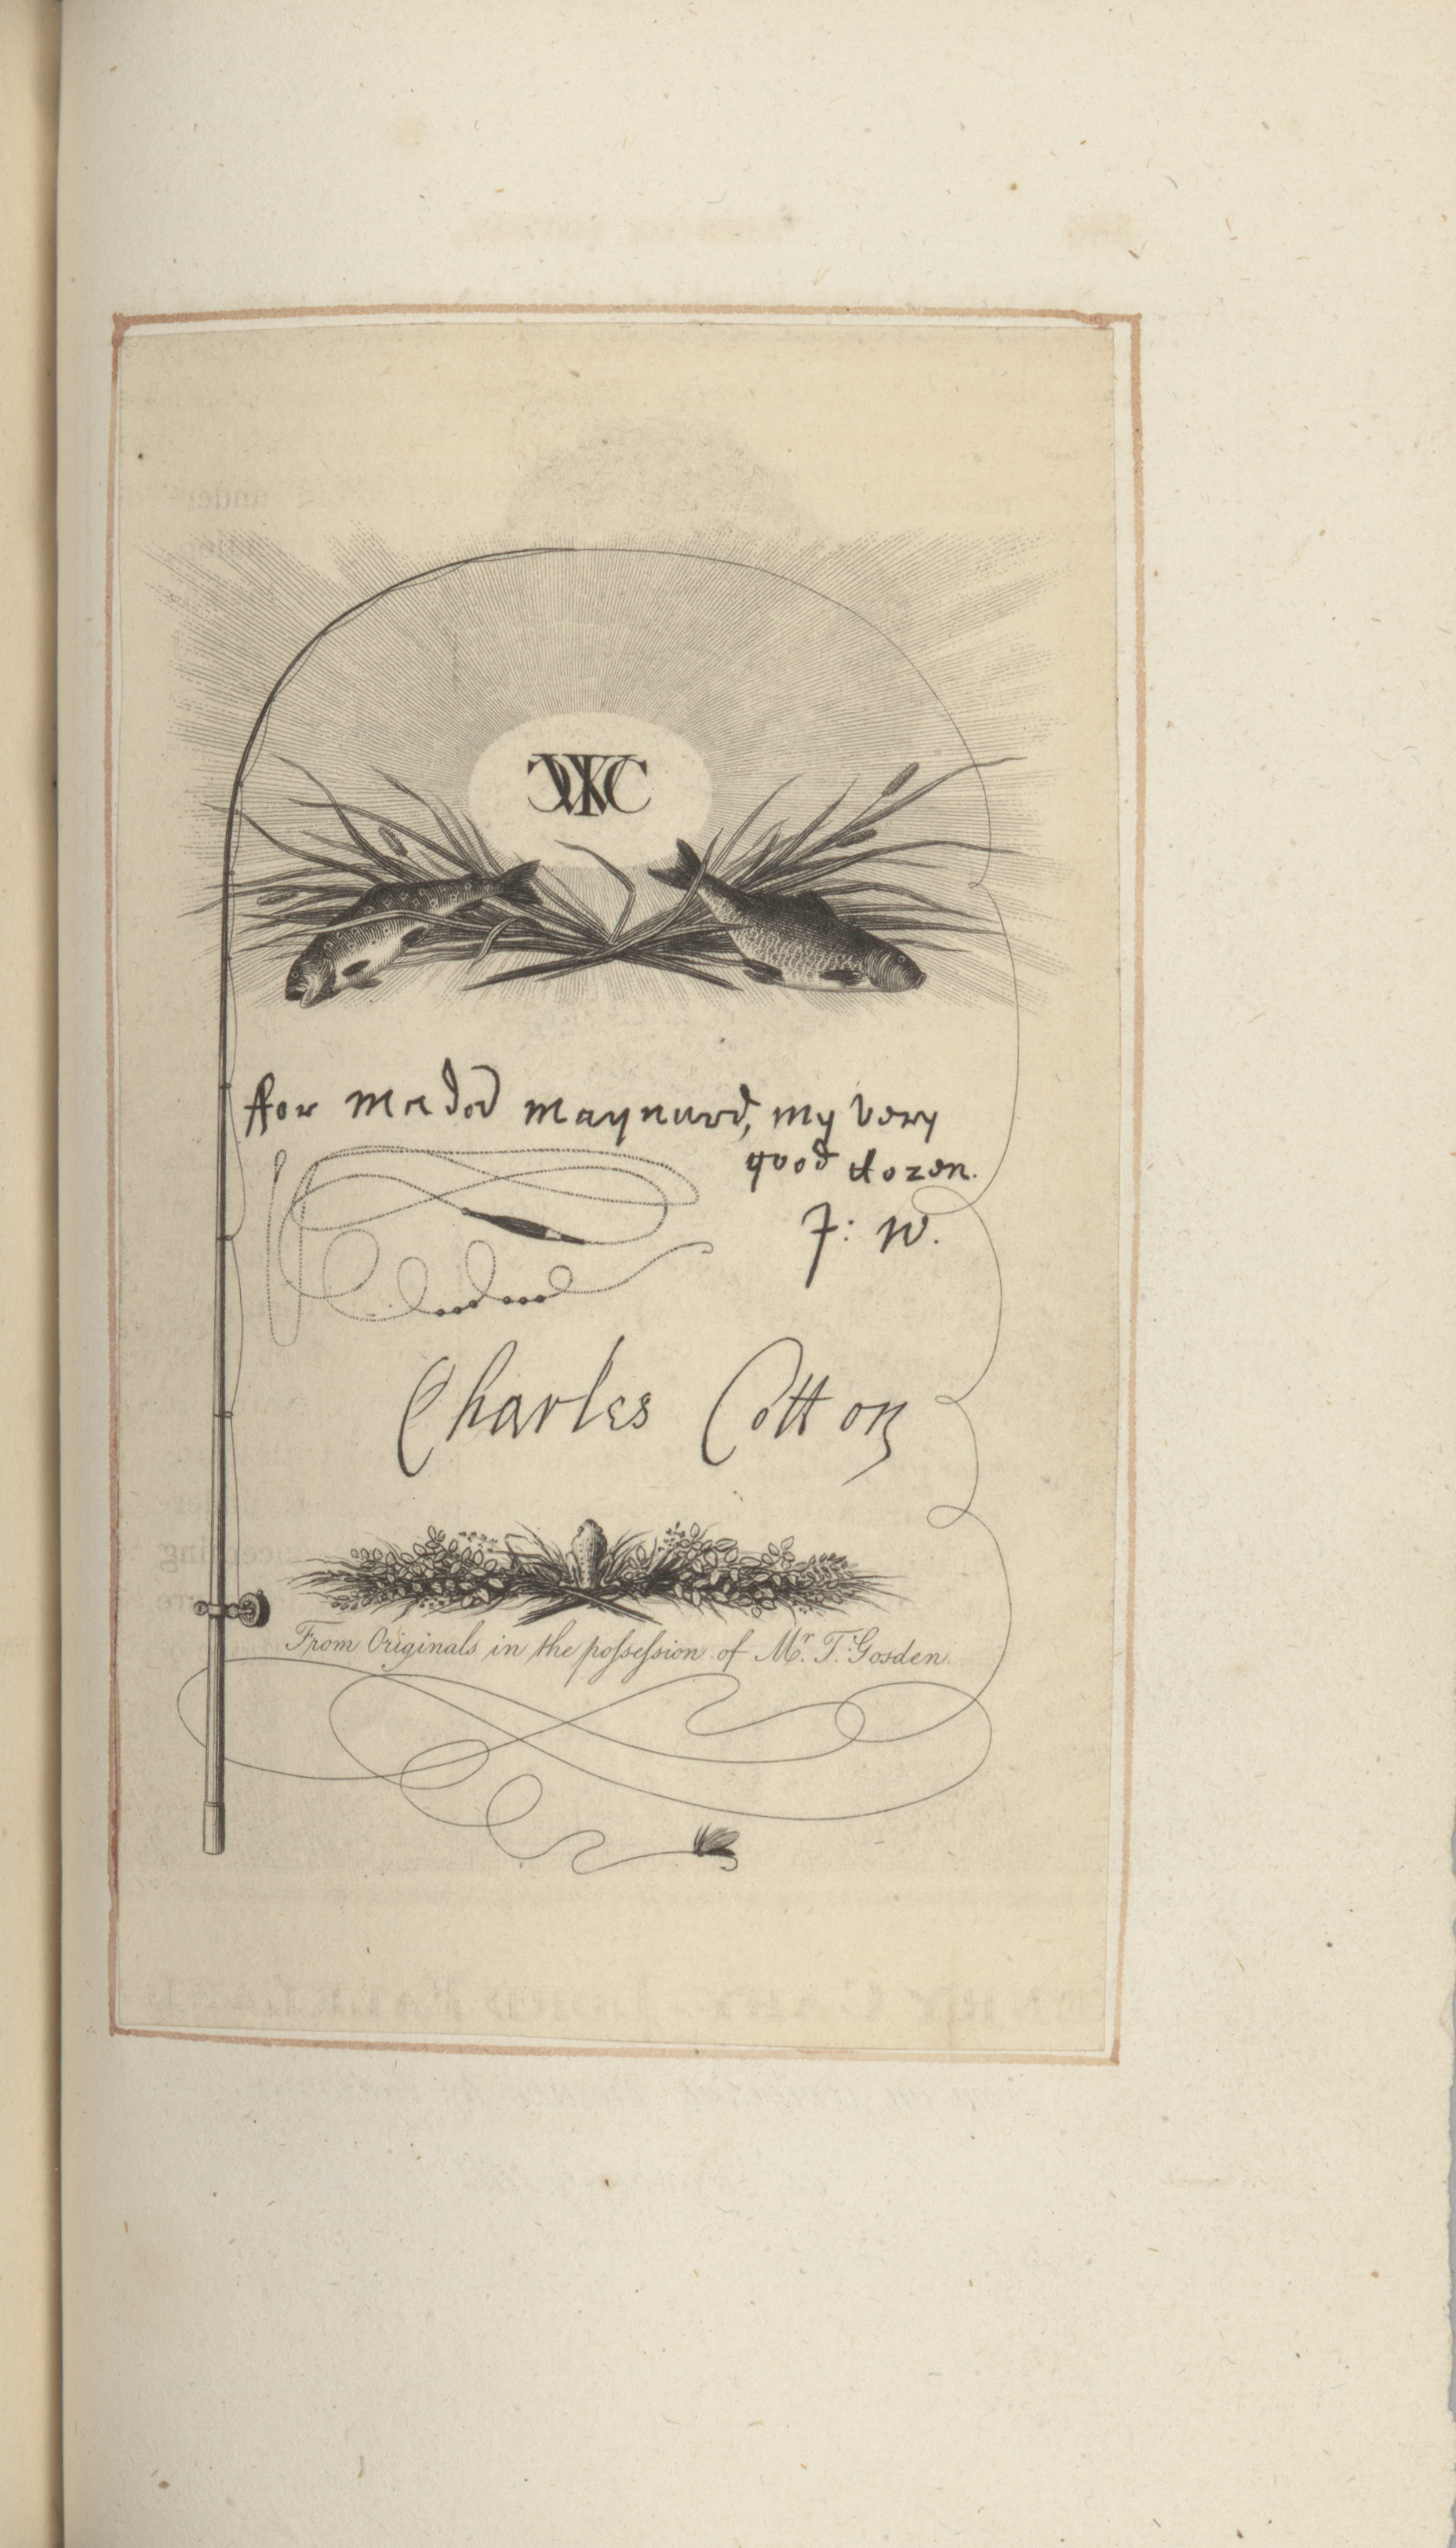 Charles Cotton's Signature in the 1815 Edition